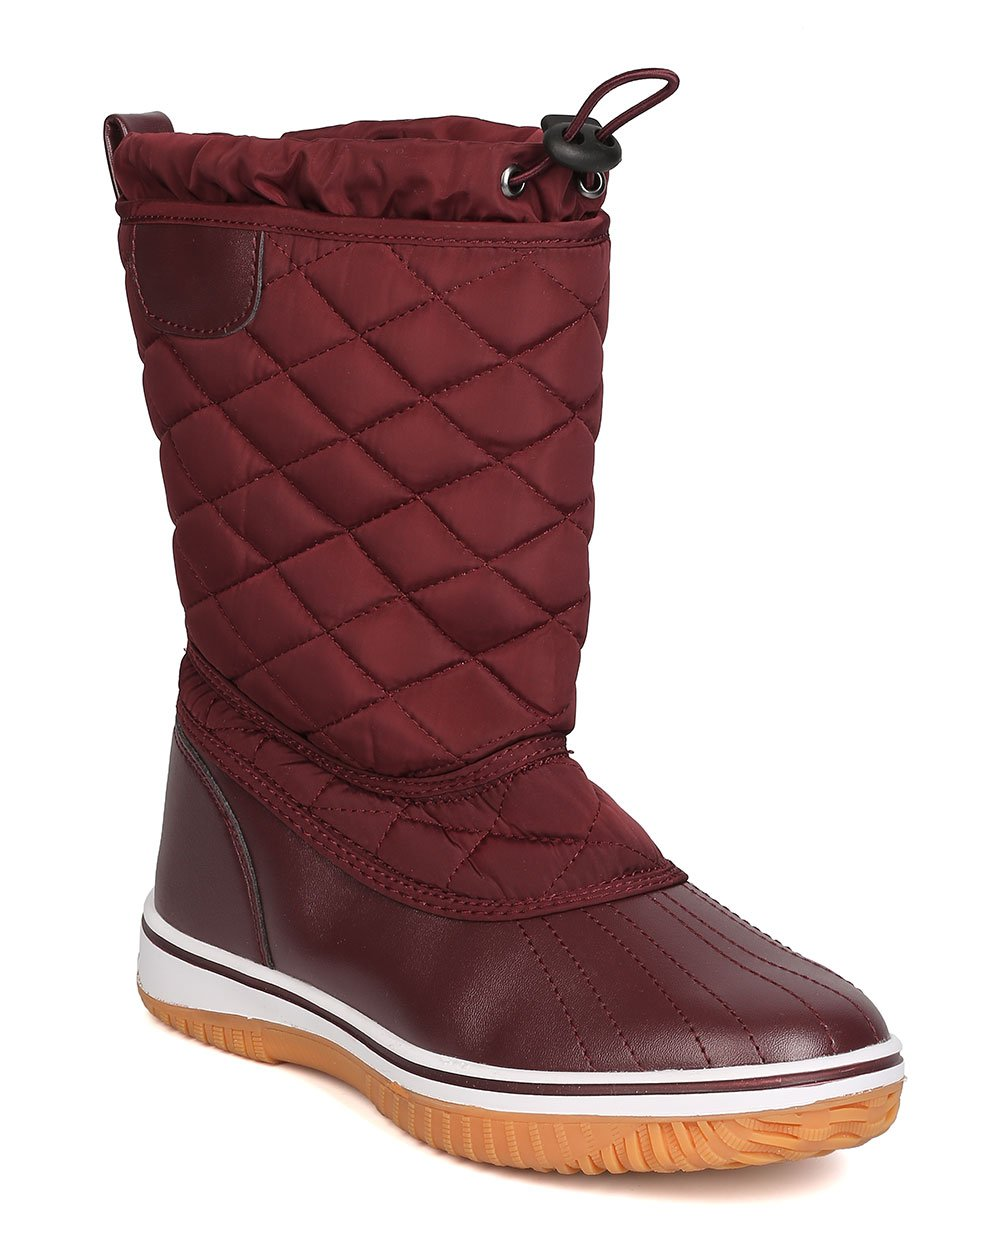 Refresh Women Mixed Media Quilted Drawstring Snow Boot GB12 B01N1SILH8 8 M US|Burgundy